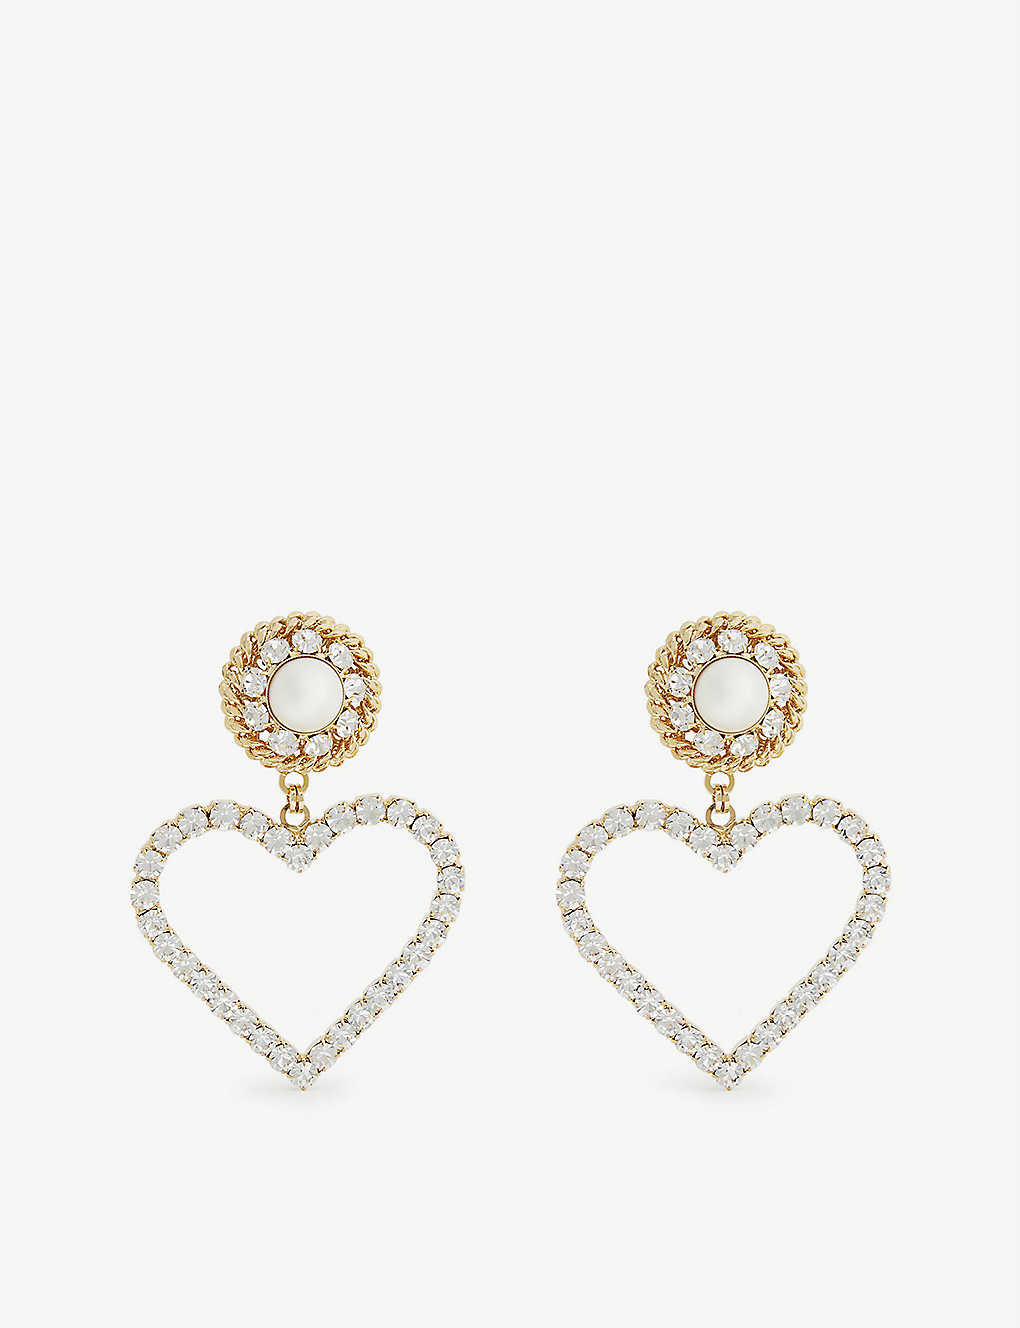 Alessandra Rich Earrings HEART FAUX-PEARL, CRYSTAL AND GOLD-TONED METAL CLIP-ON EARRINGS